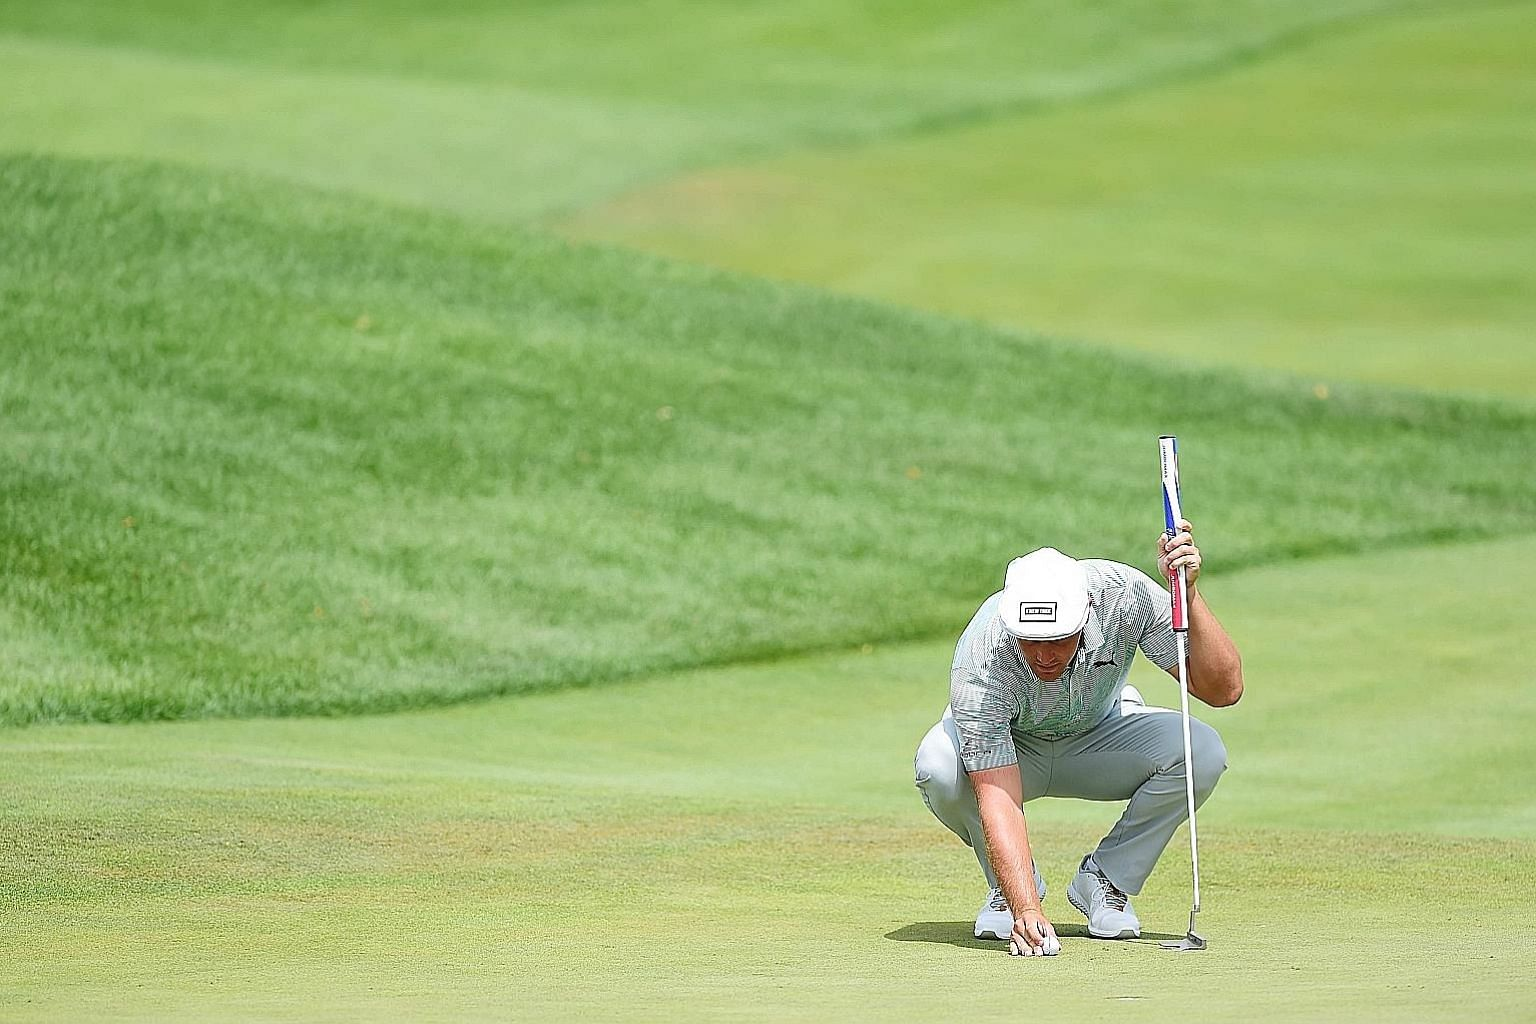 Bryson DeChambeau lining up a putt at last week's Northern Trust tournament in New Jersey. The American golfer was criticised for slow play last Friday after taking 139 seconds to putt. PHOTO: AGENCE FRANCE-PRESSE